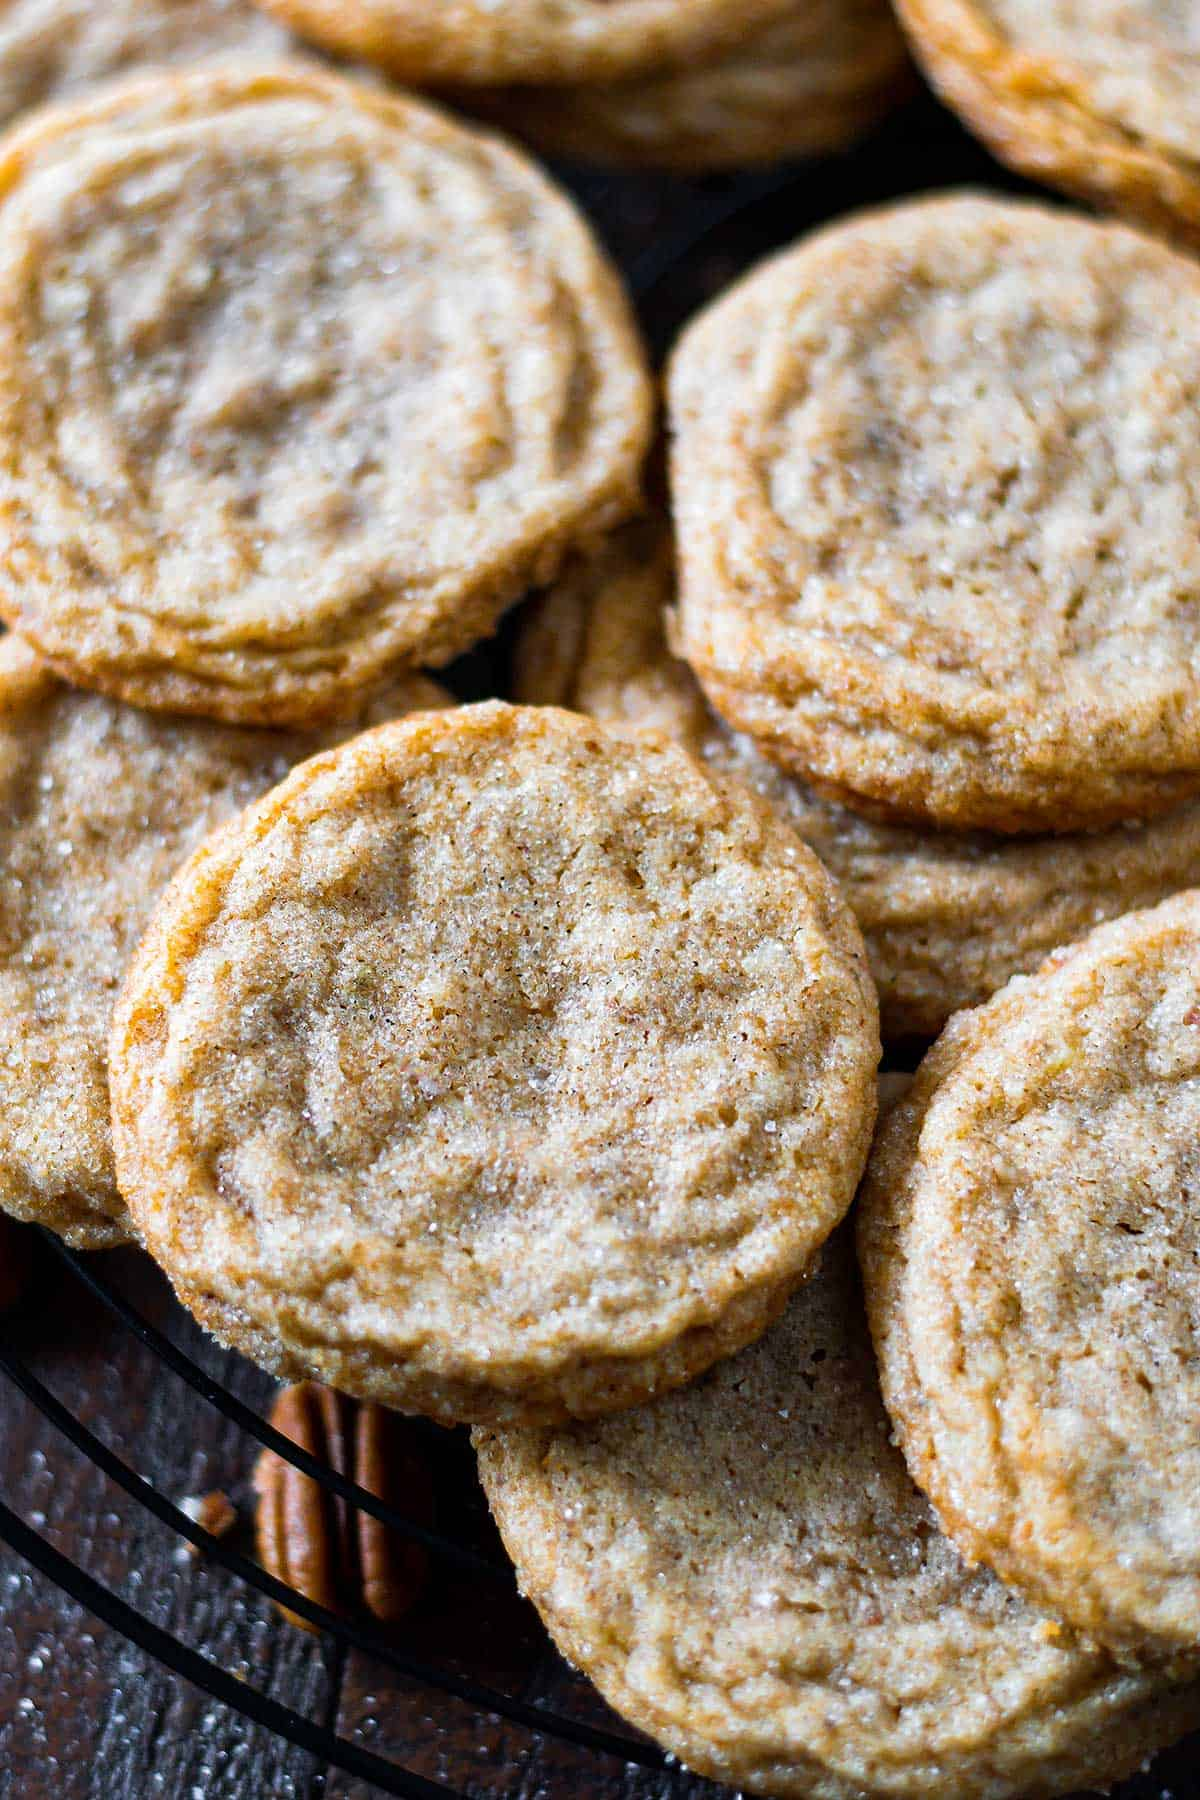 Up close image of a stack of pecan butter cookies on a wire baking rack.